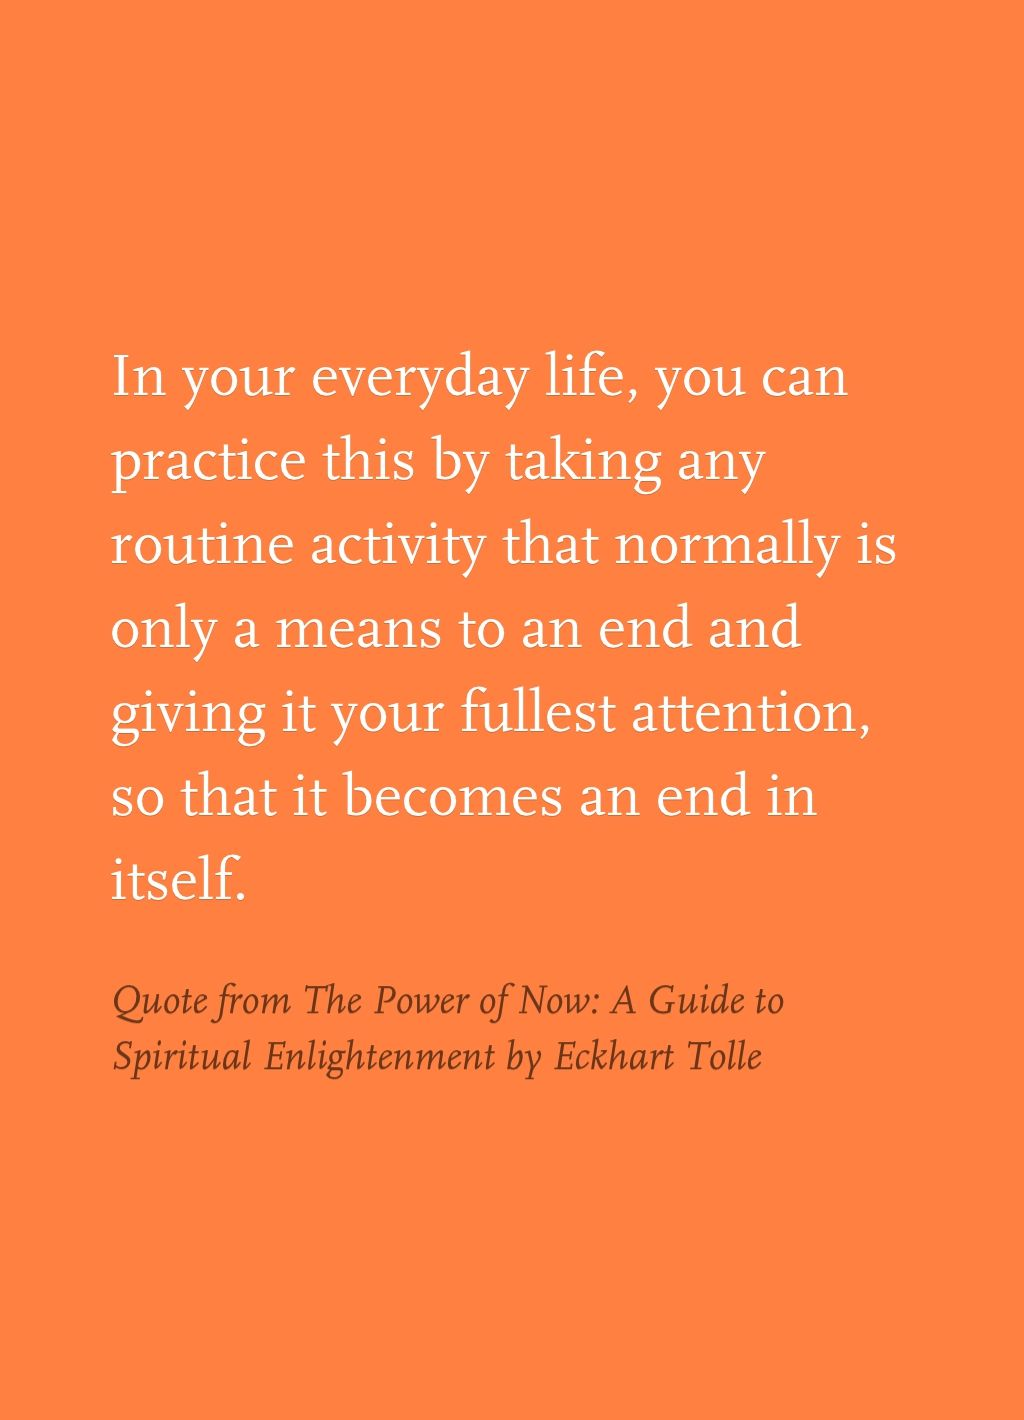 The Power Of Now Quotes Quote From The Power Of Now A Guide To Spiritual Enlightenment.